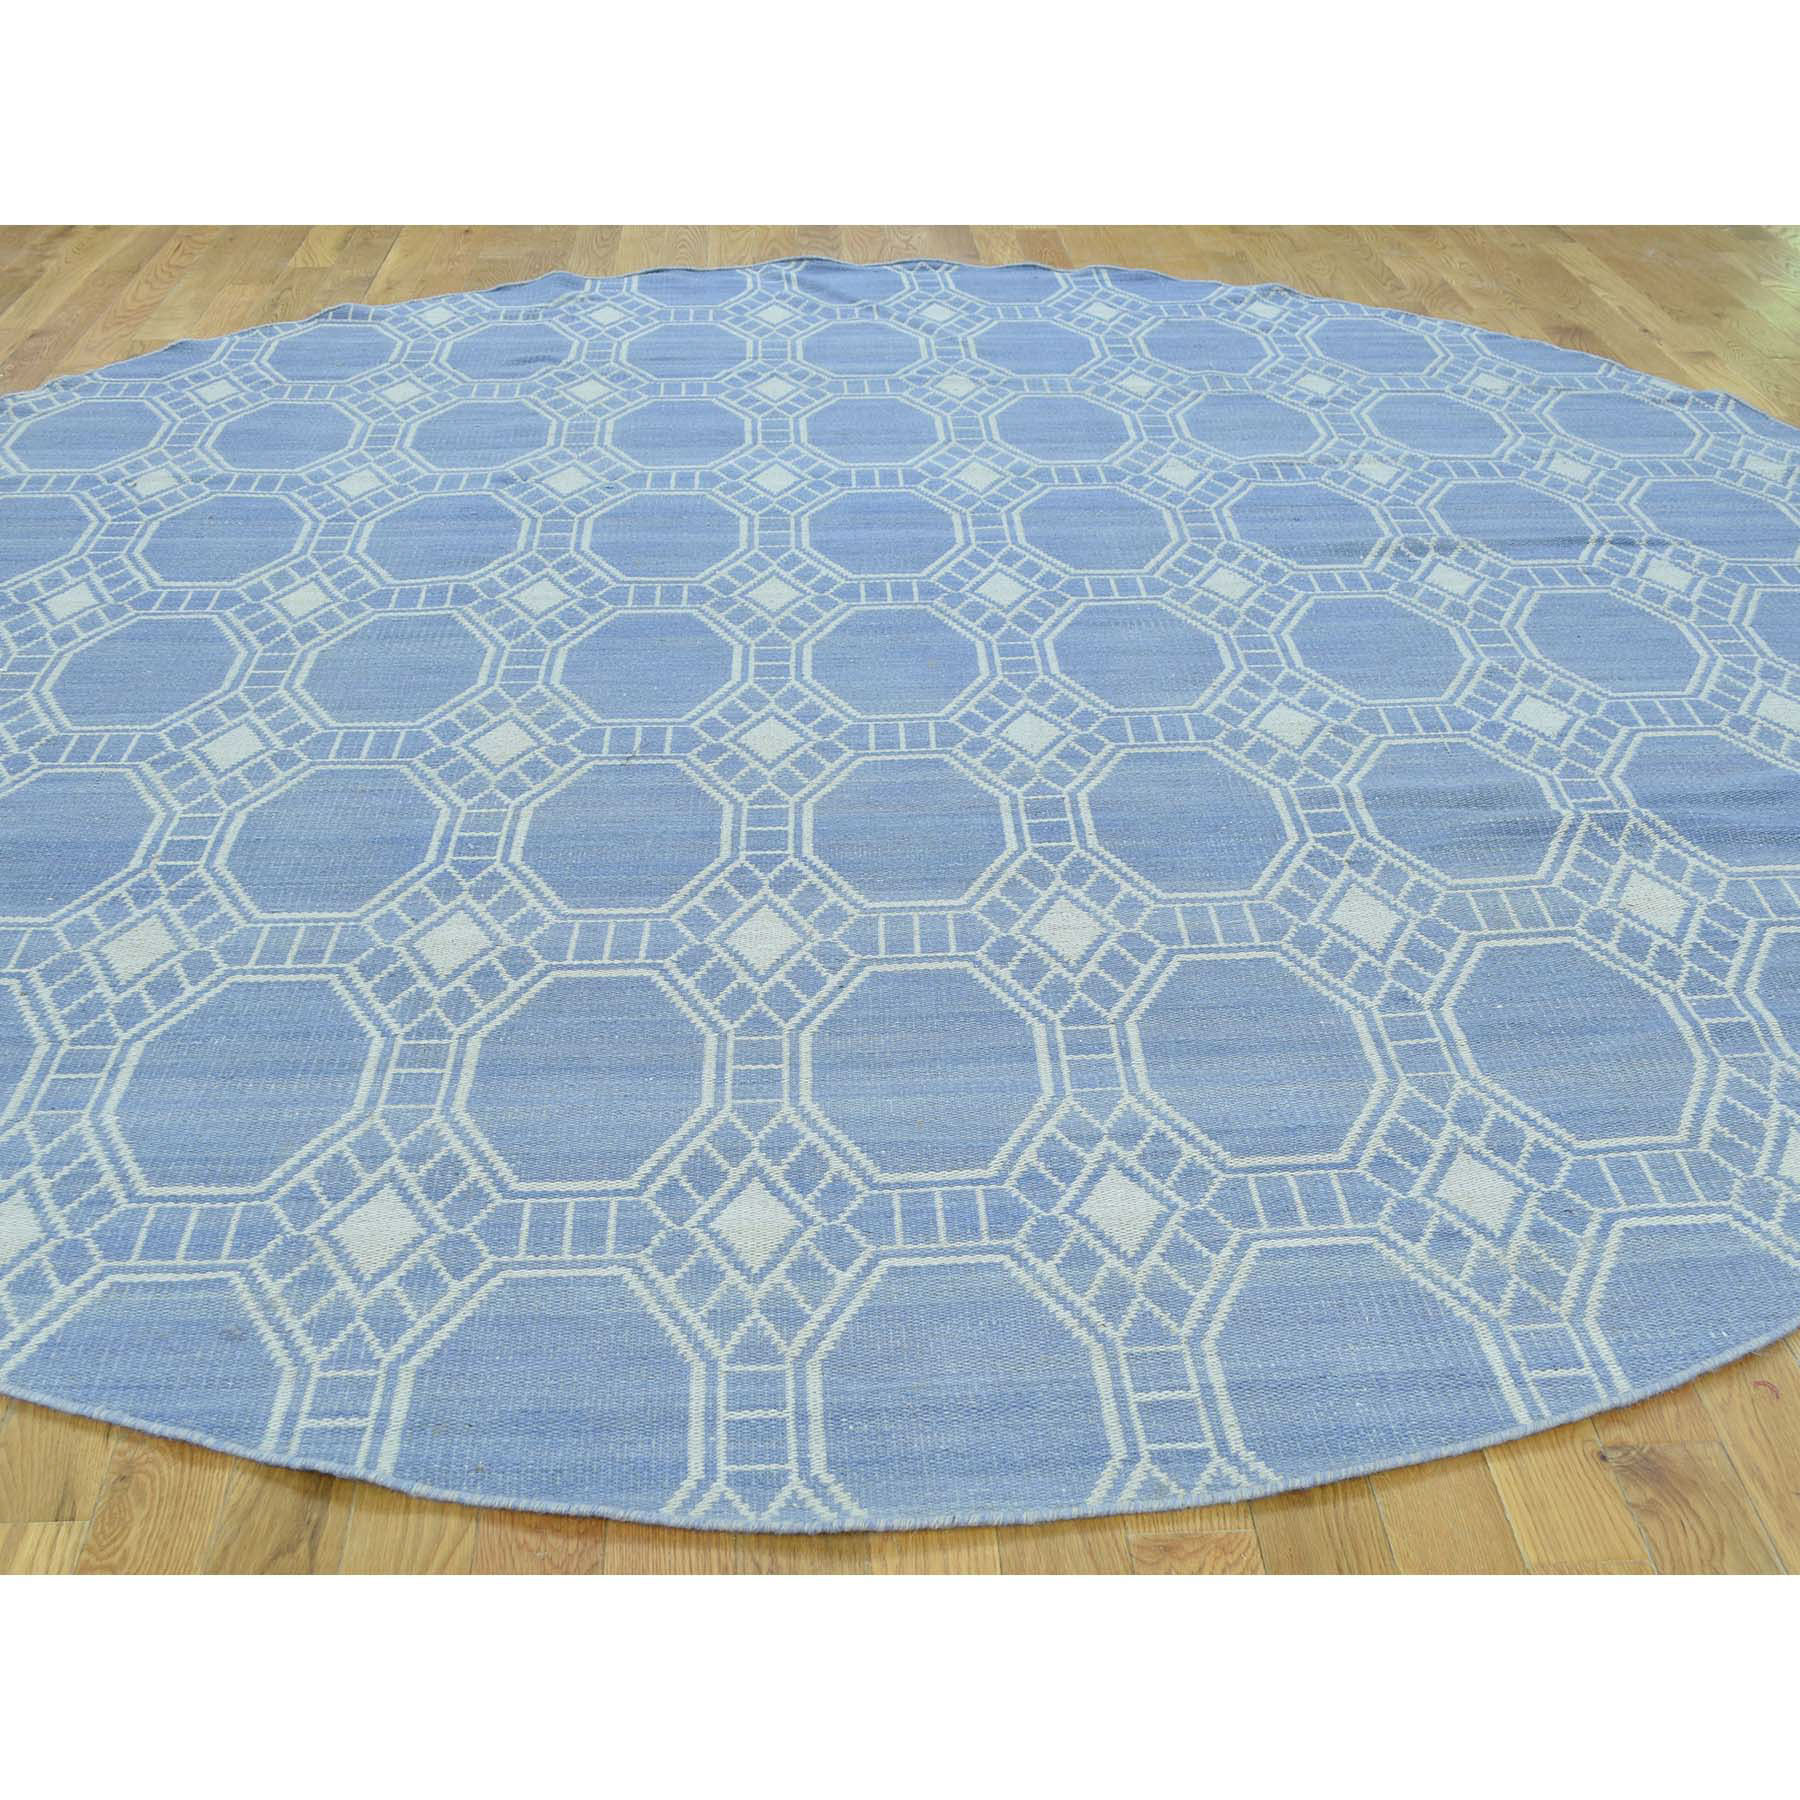 9-8 x9-8  Hand-Woven Flat Weave Reversible Durie Kilim Round Oriental Rug